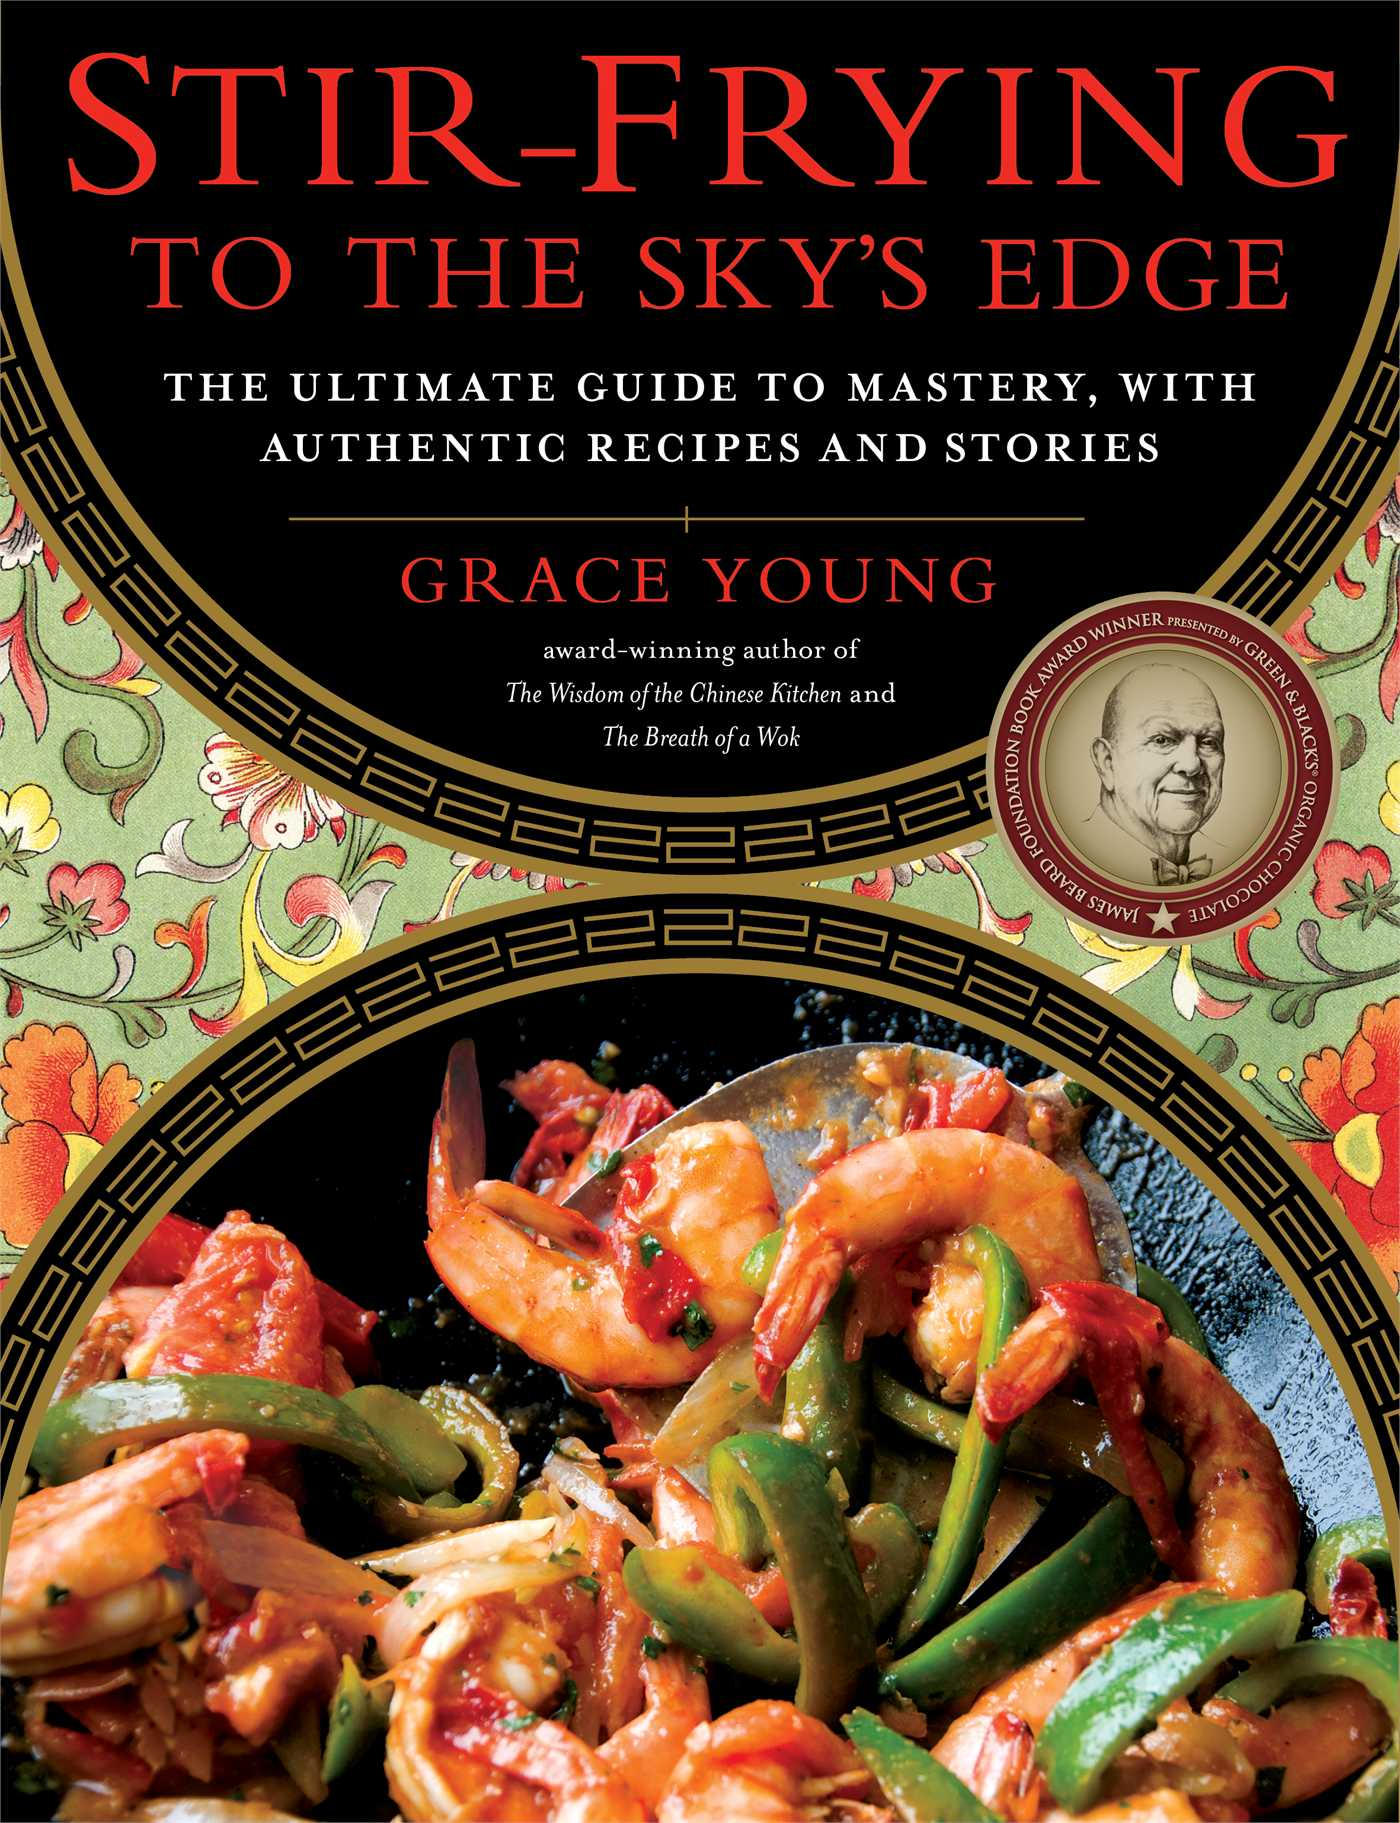 Stir-Frying to the Sky's Edge The Ultimate Guide to Mastery, with Authentic Recipes and Stories